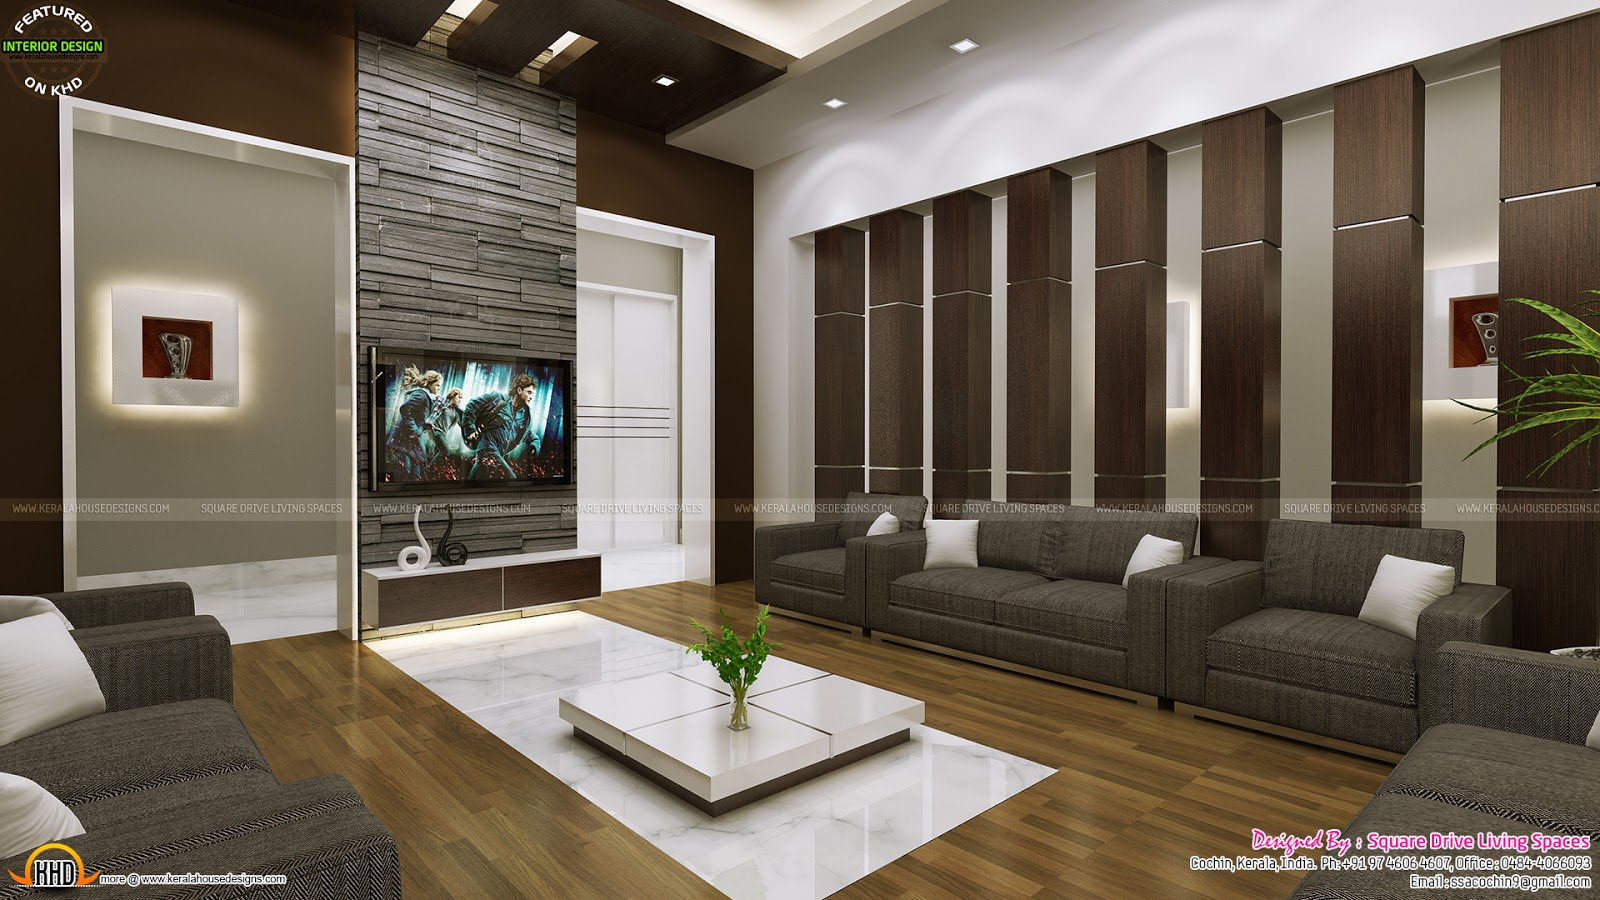 Attractive home interior ideas kerala home design and for House designs interior photos